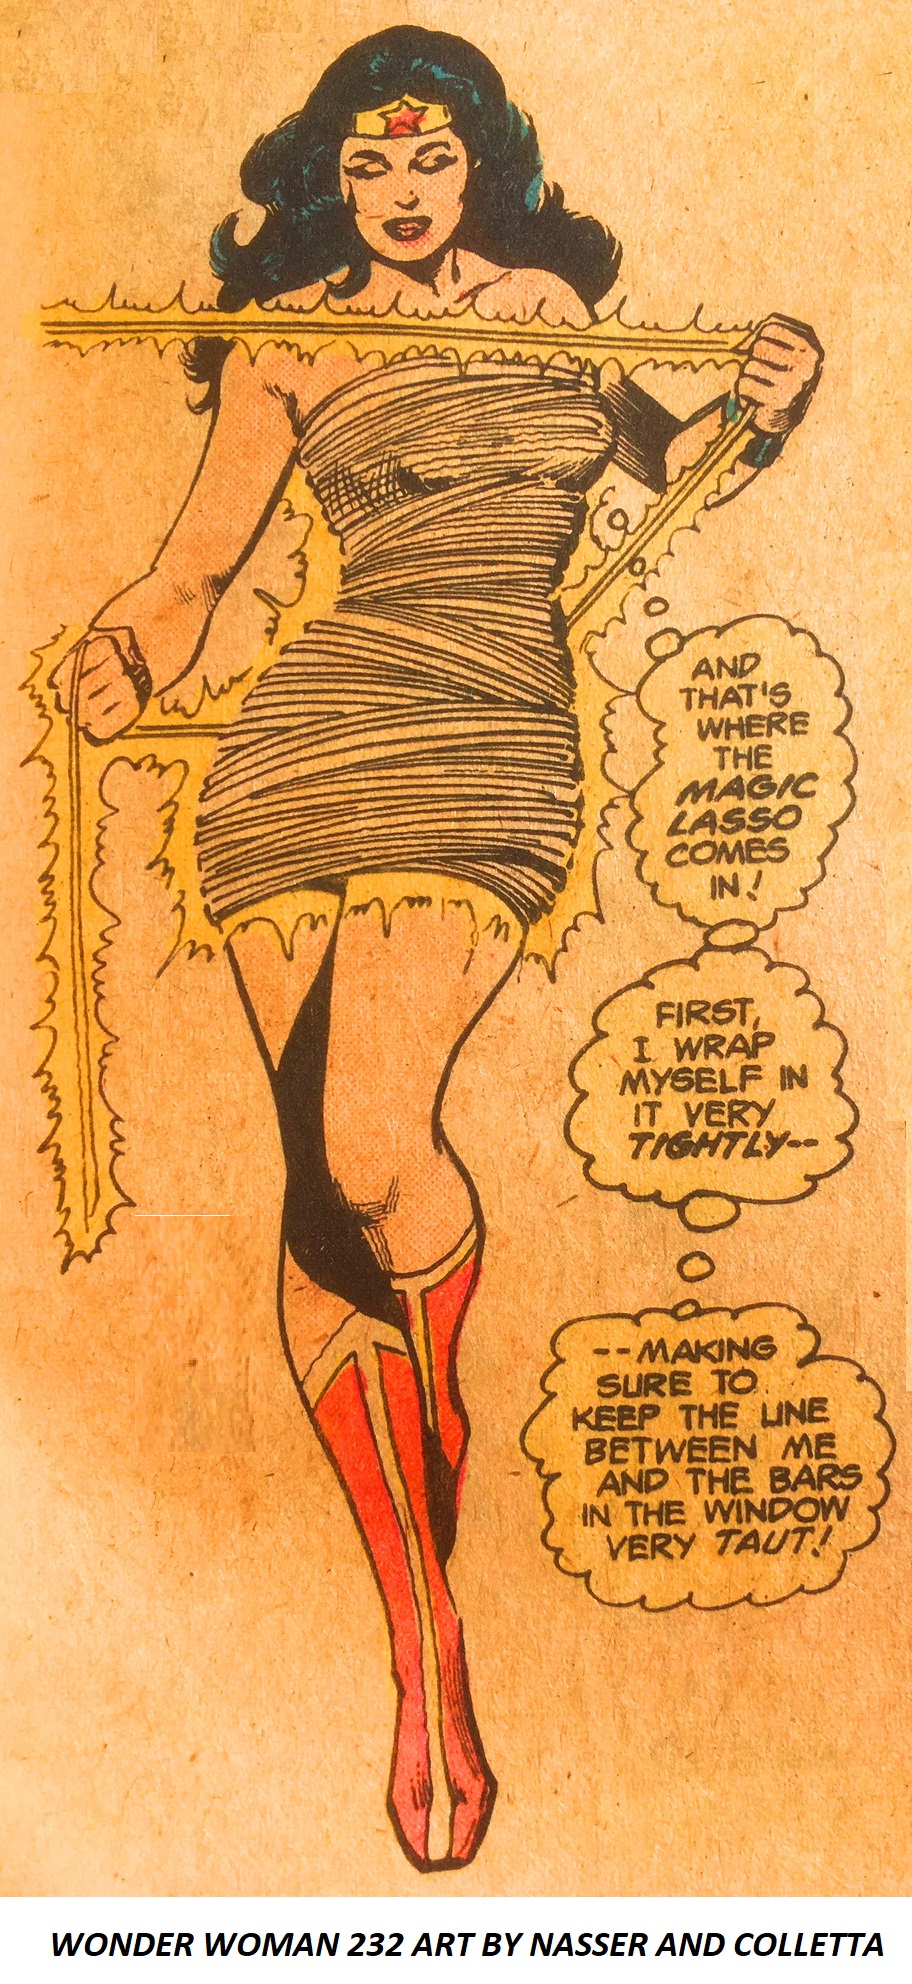 Wonder Woman #232 Art by Nasser and Colletta